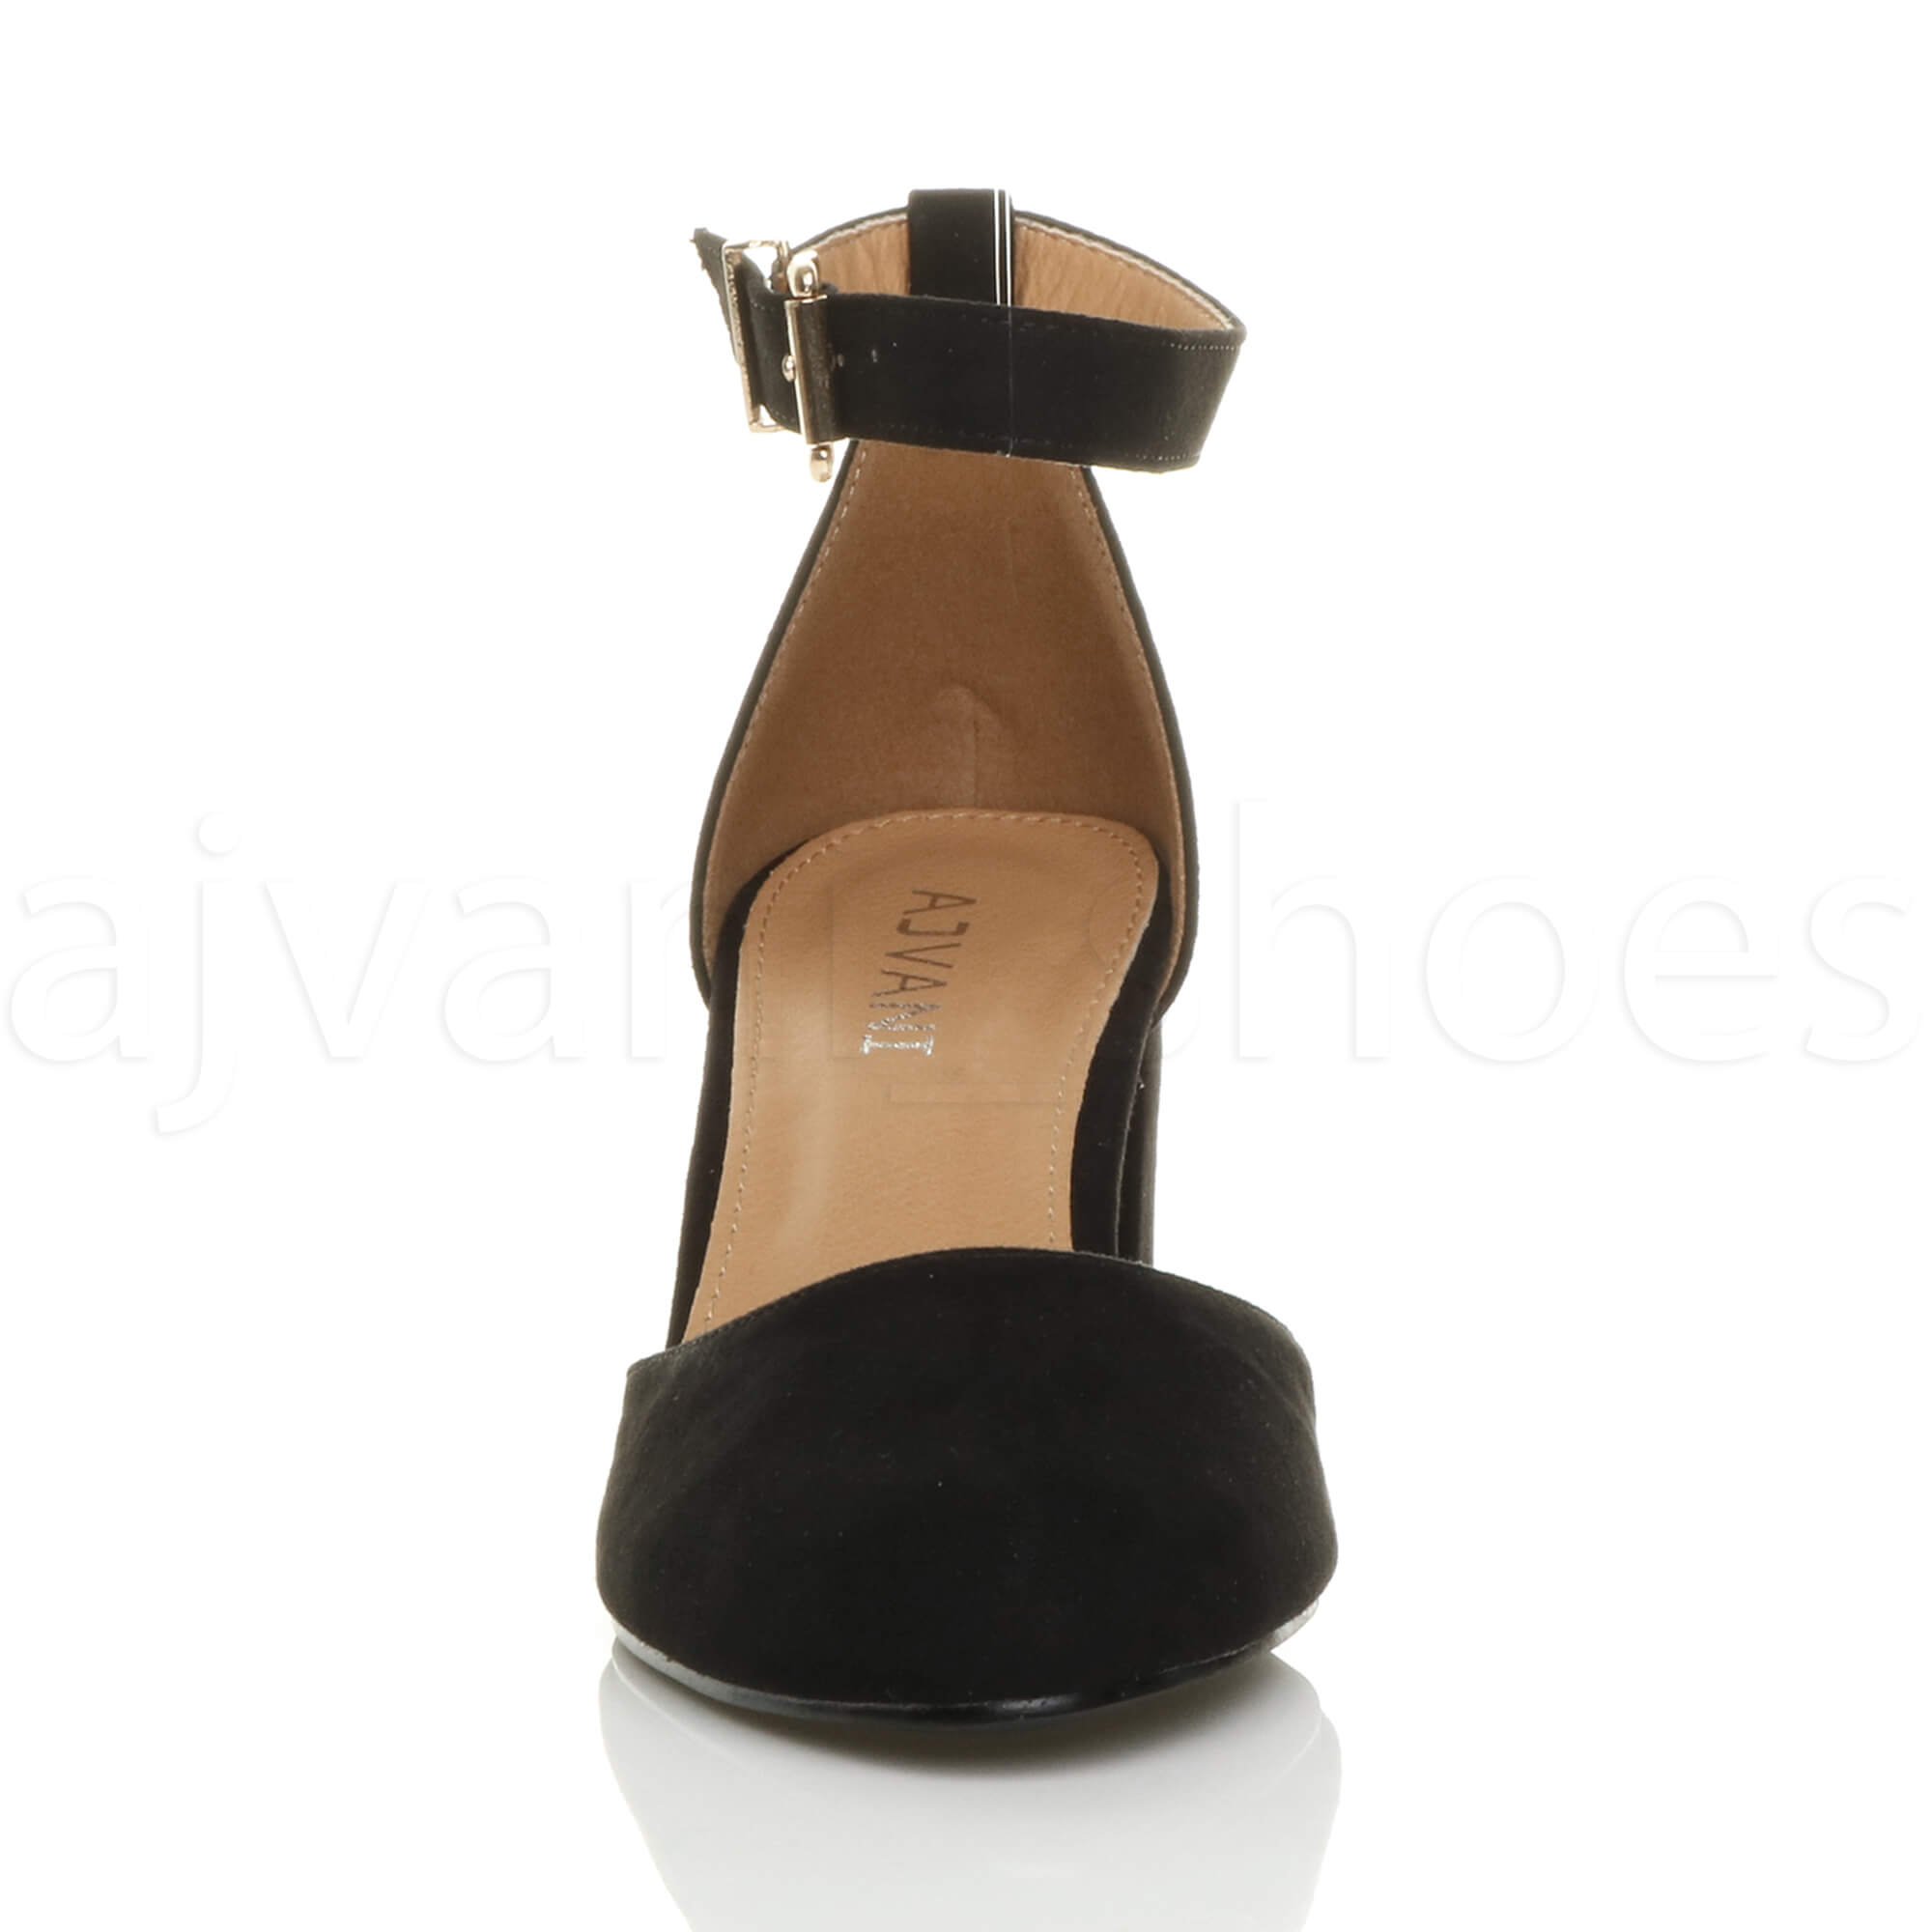 WOMENS-LADIES-LOW-MID-BLOCK-HEEL-ANKLE-STRAP-MARY-JANE-COURT-SHOES-SANDALS-SIZE thumbnail 23